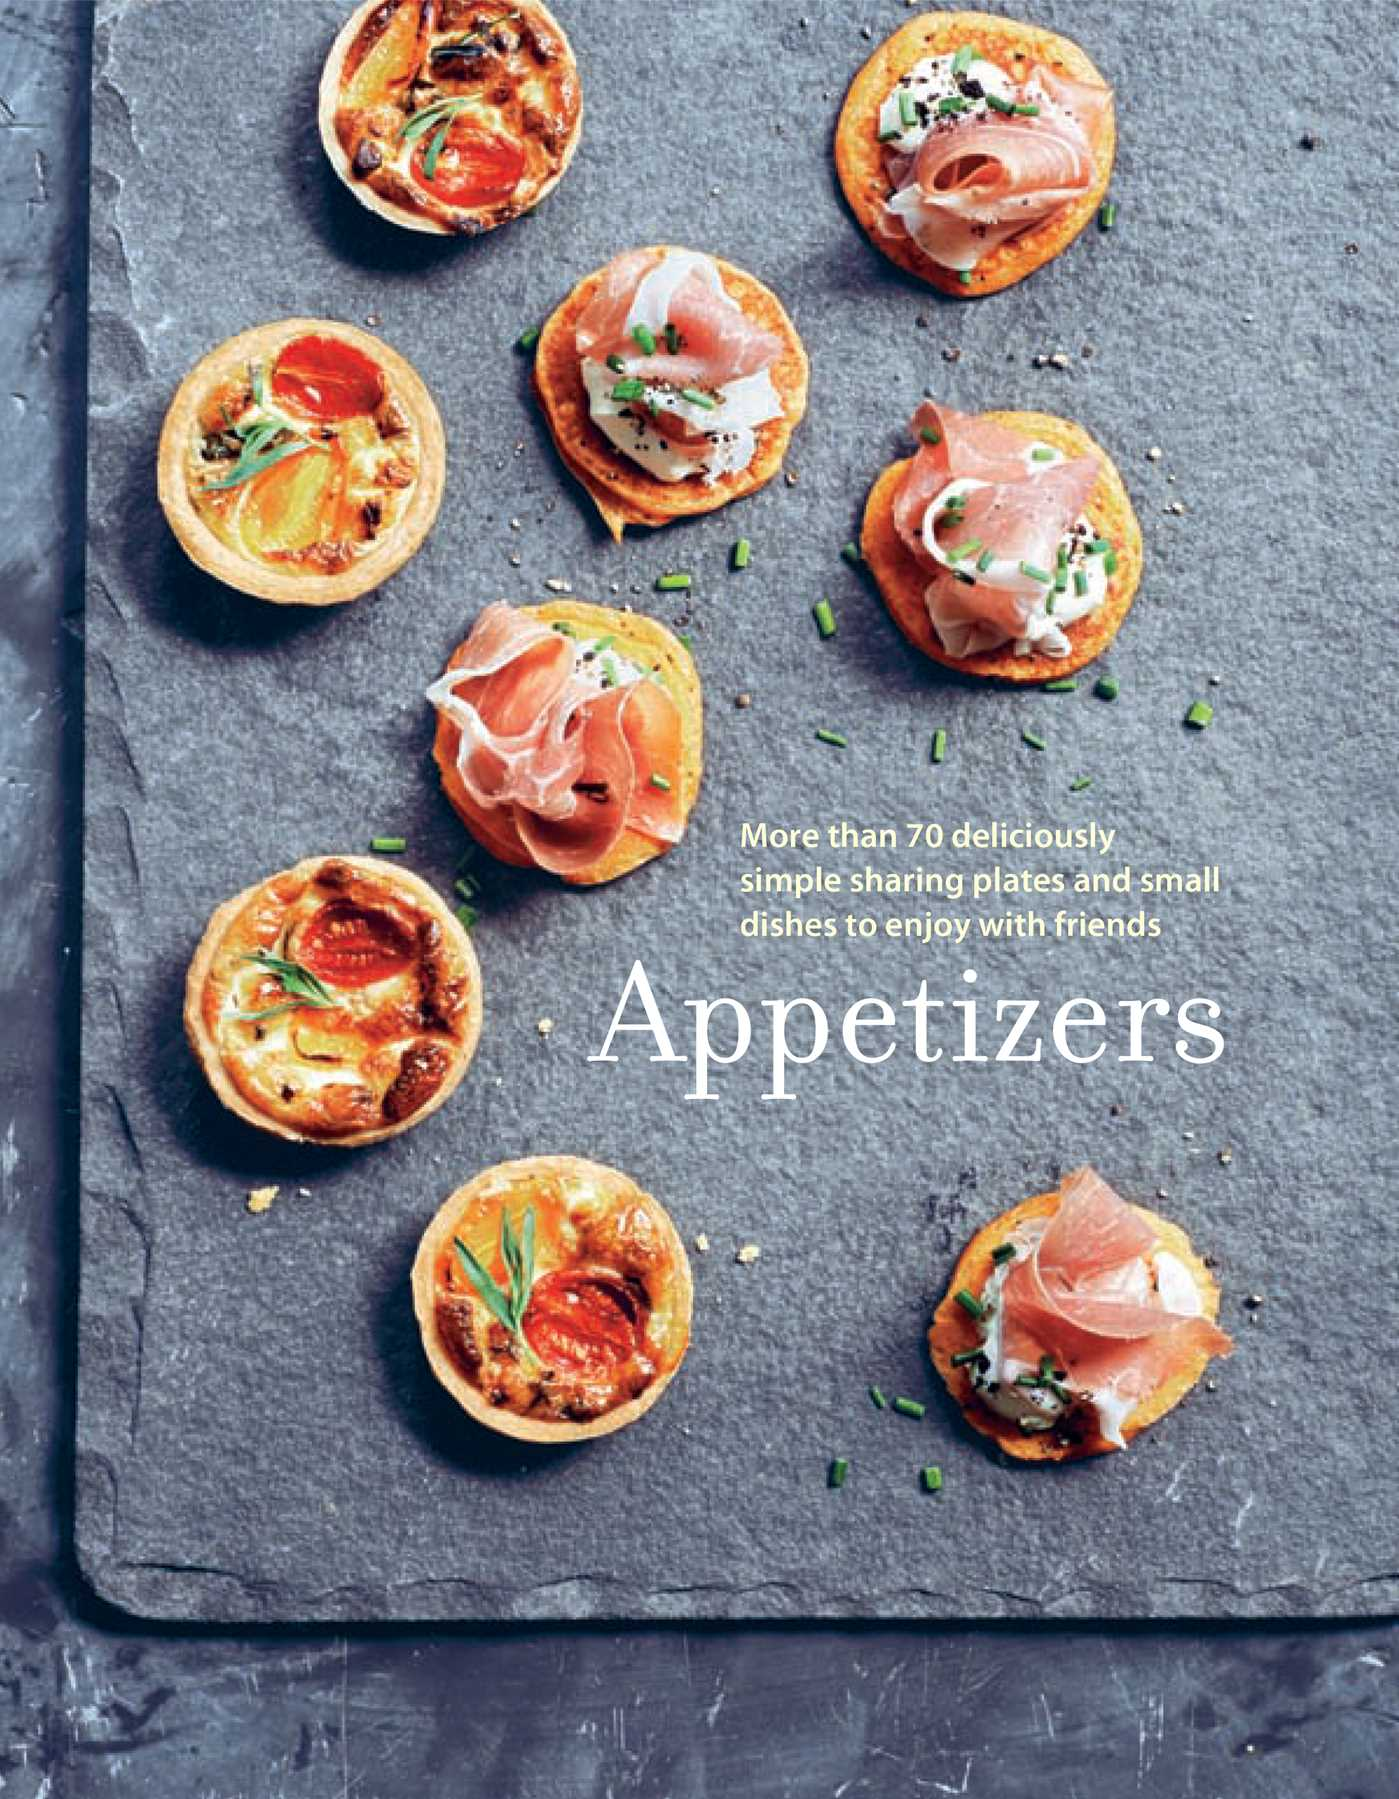 Appetizers book by ryland peters small official publisher page appetizers 9781849757171 hr forumfinder Choice Image